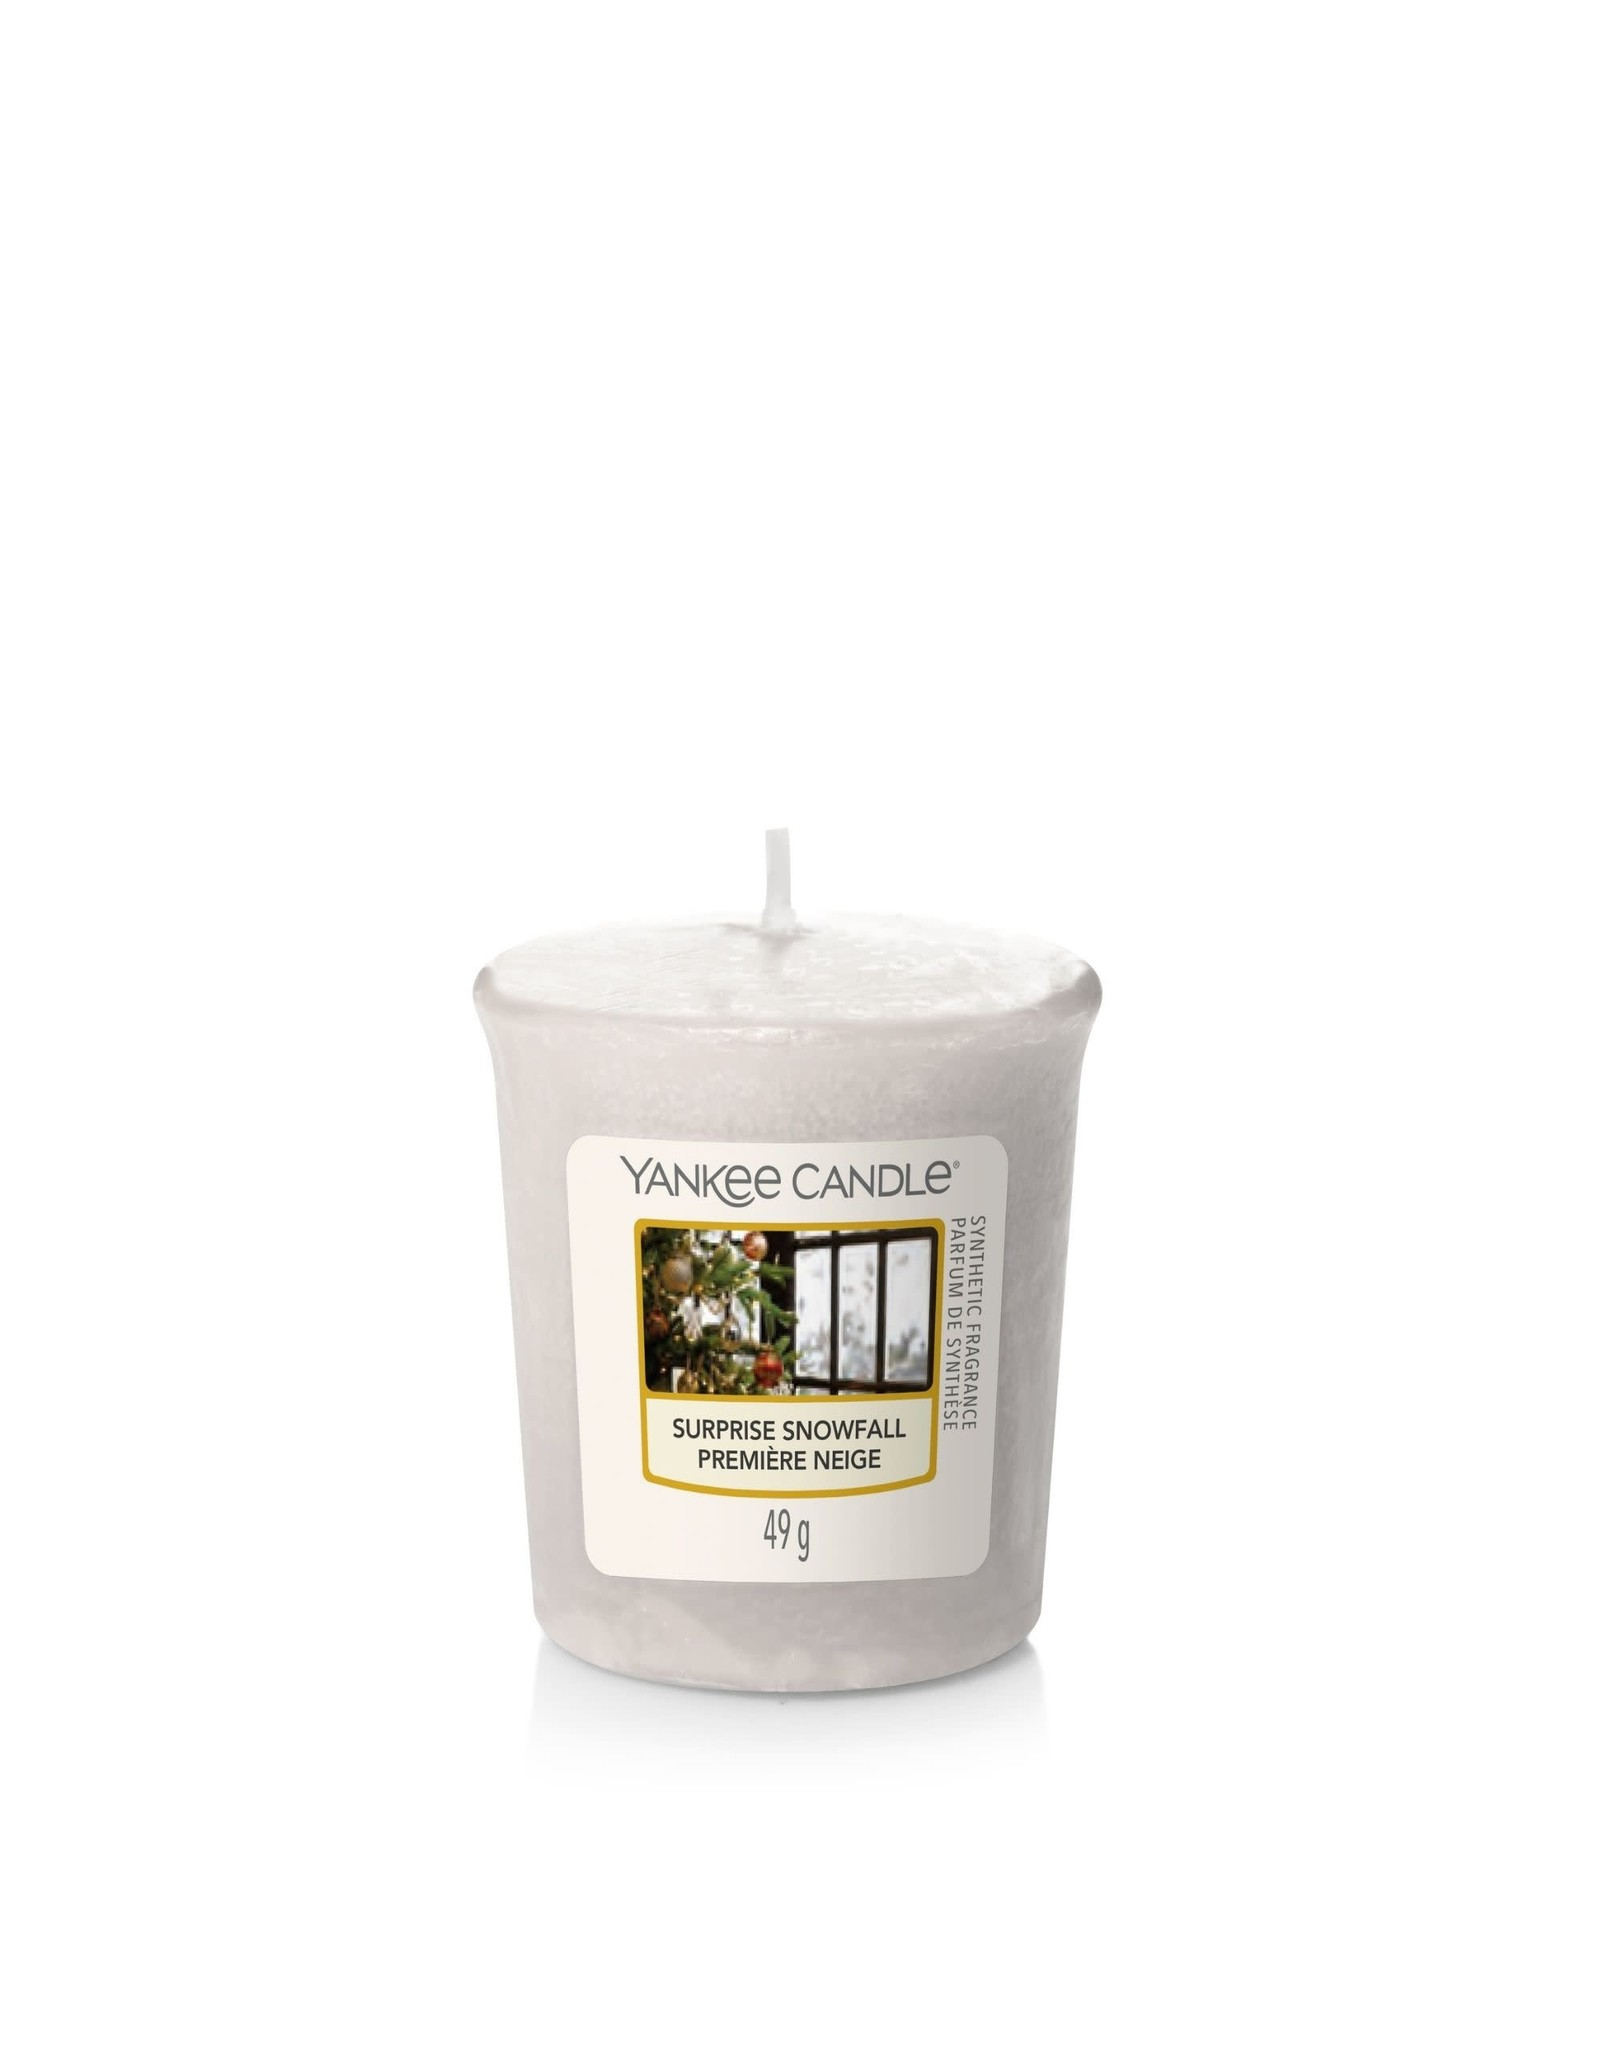 Yankee Candle Surprise Snowfall - Votive